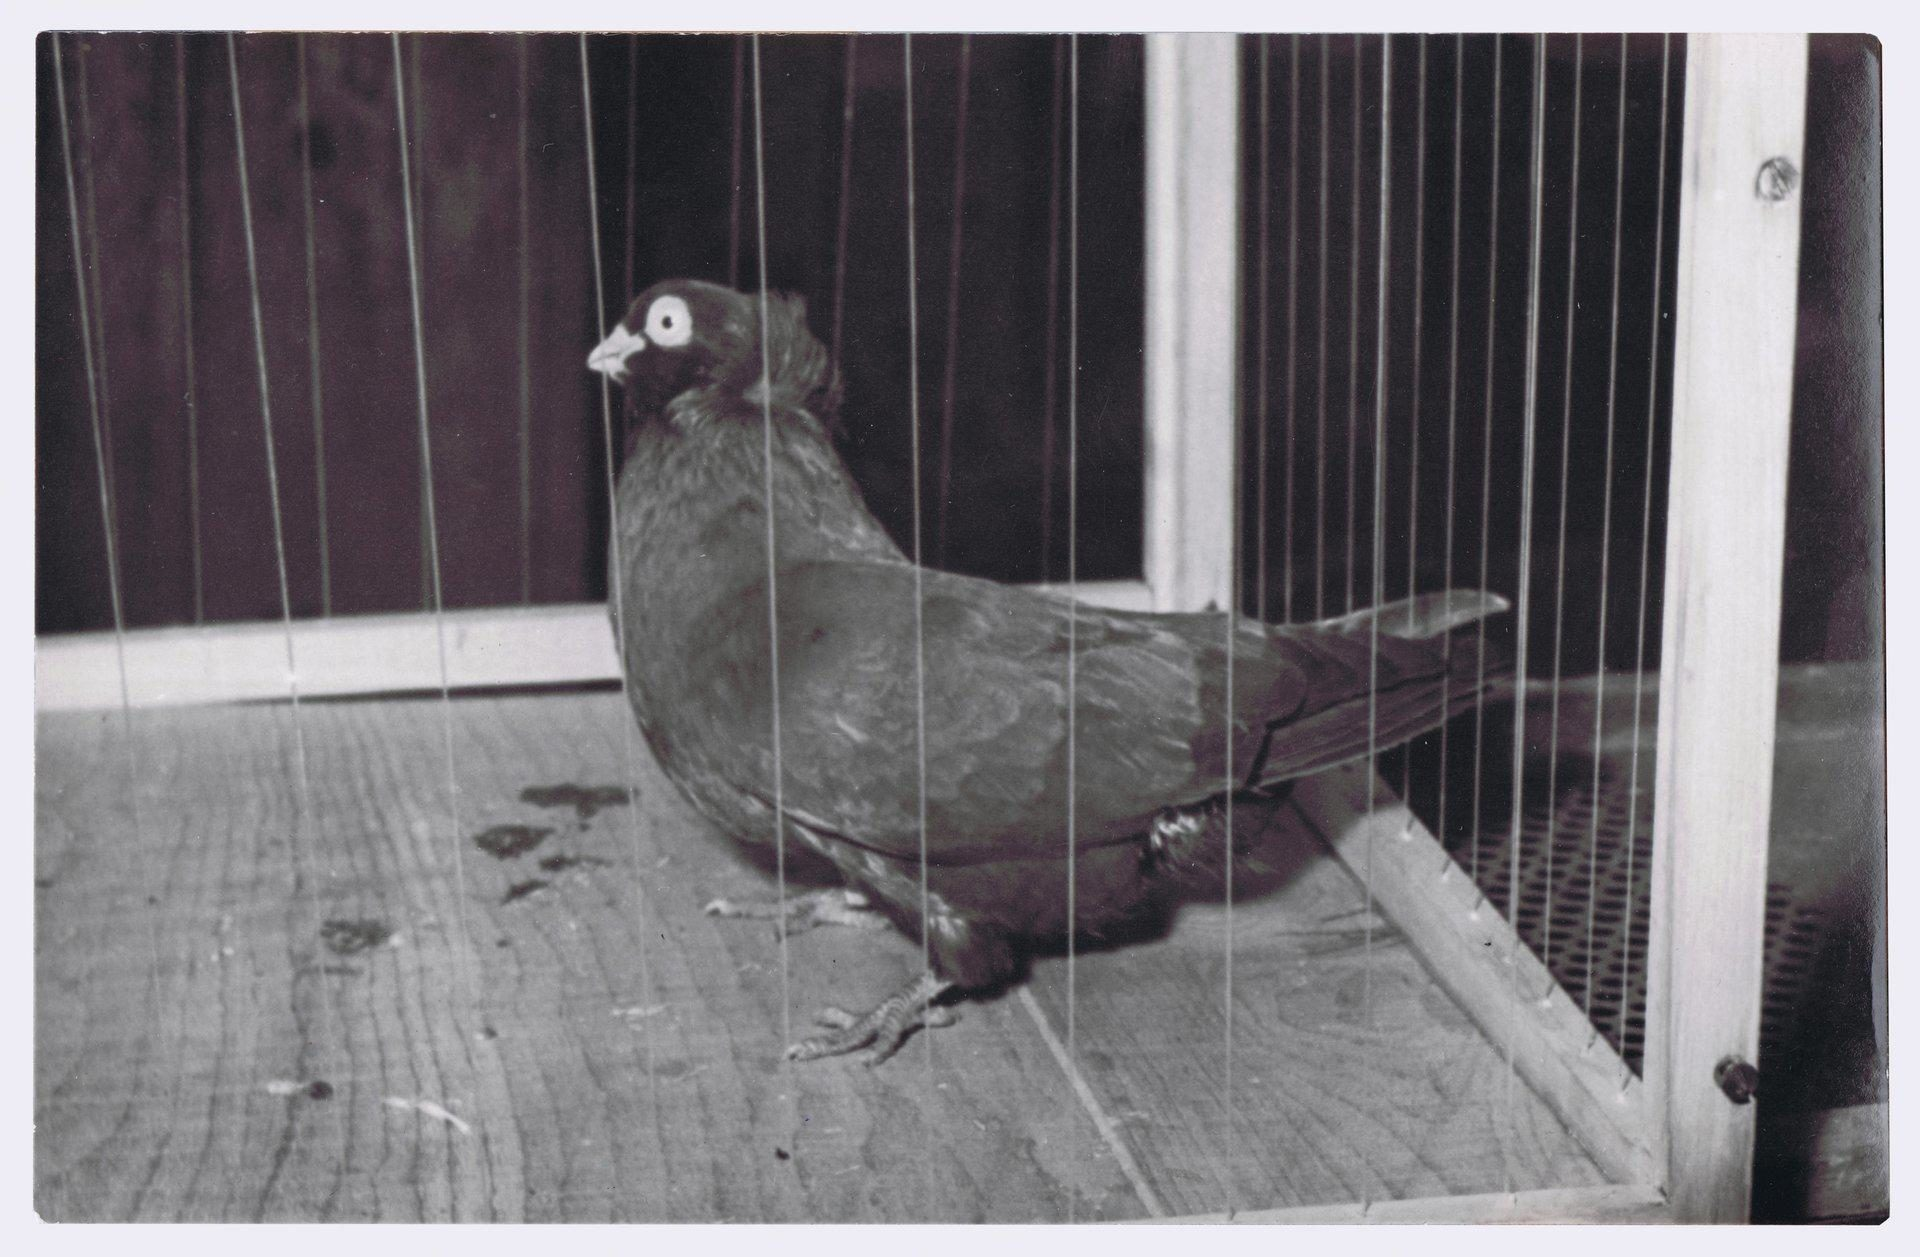 Petra Feriancová, Series Creator – From the Archive of O. Ferianc, New Breeds 1949-1952, 2008, (4/112)